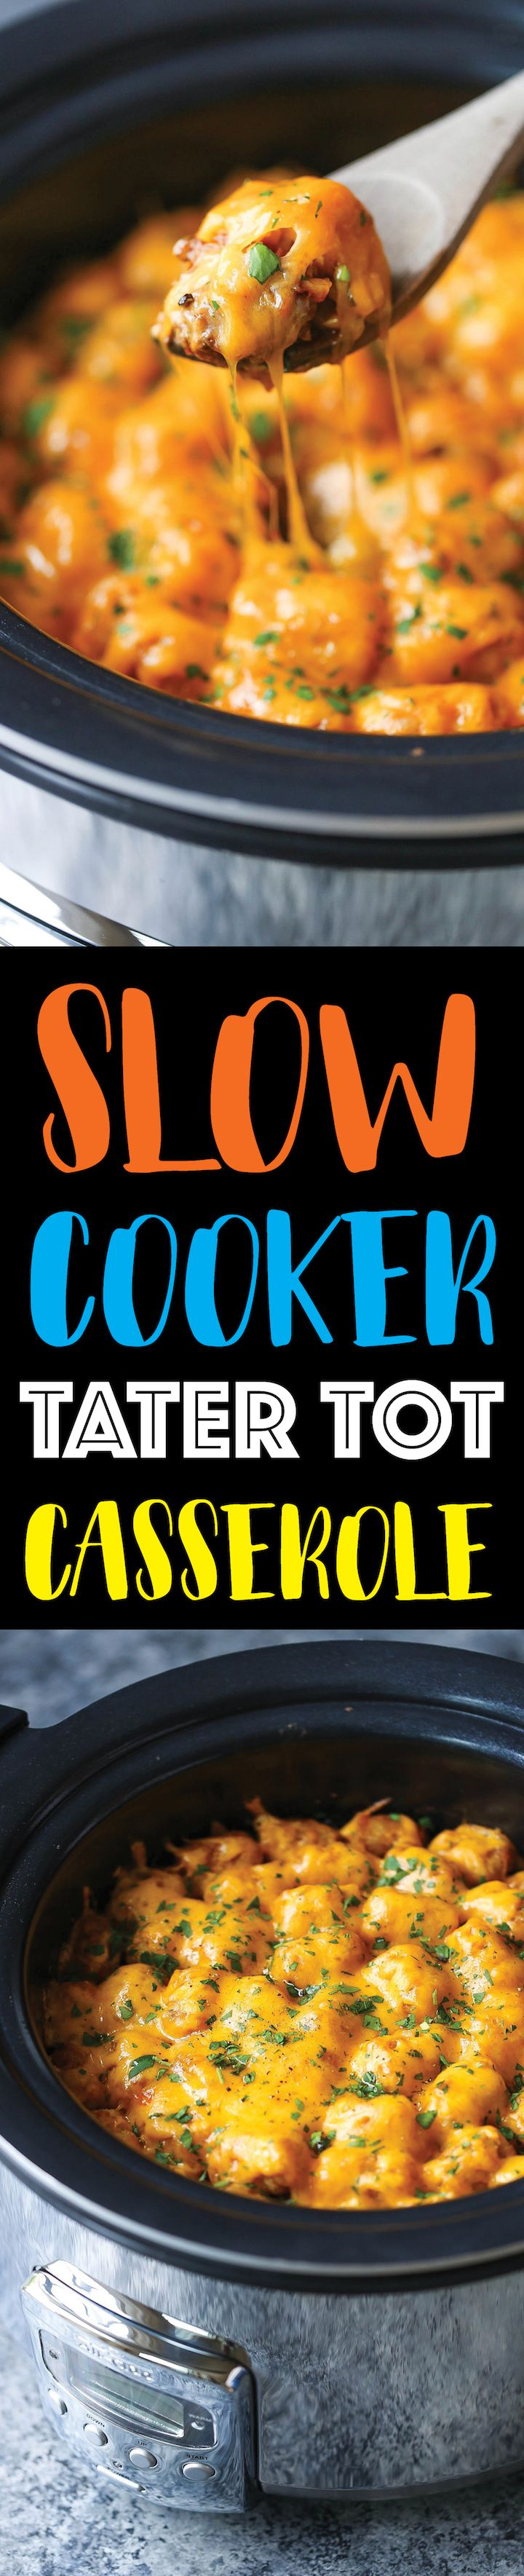 Slow Cooker Tater Tot Casserole - An absolute crowd-pleaser! Loaded with ground beef, cheese and everyone's fave: TATER TOTS! Made in the crockpot! EASY!!!